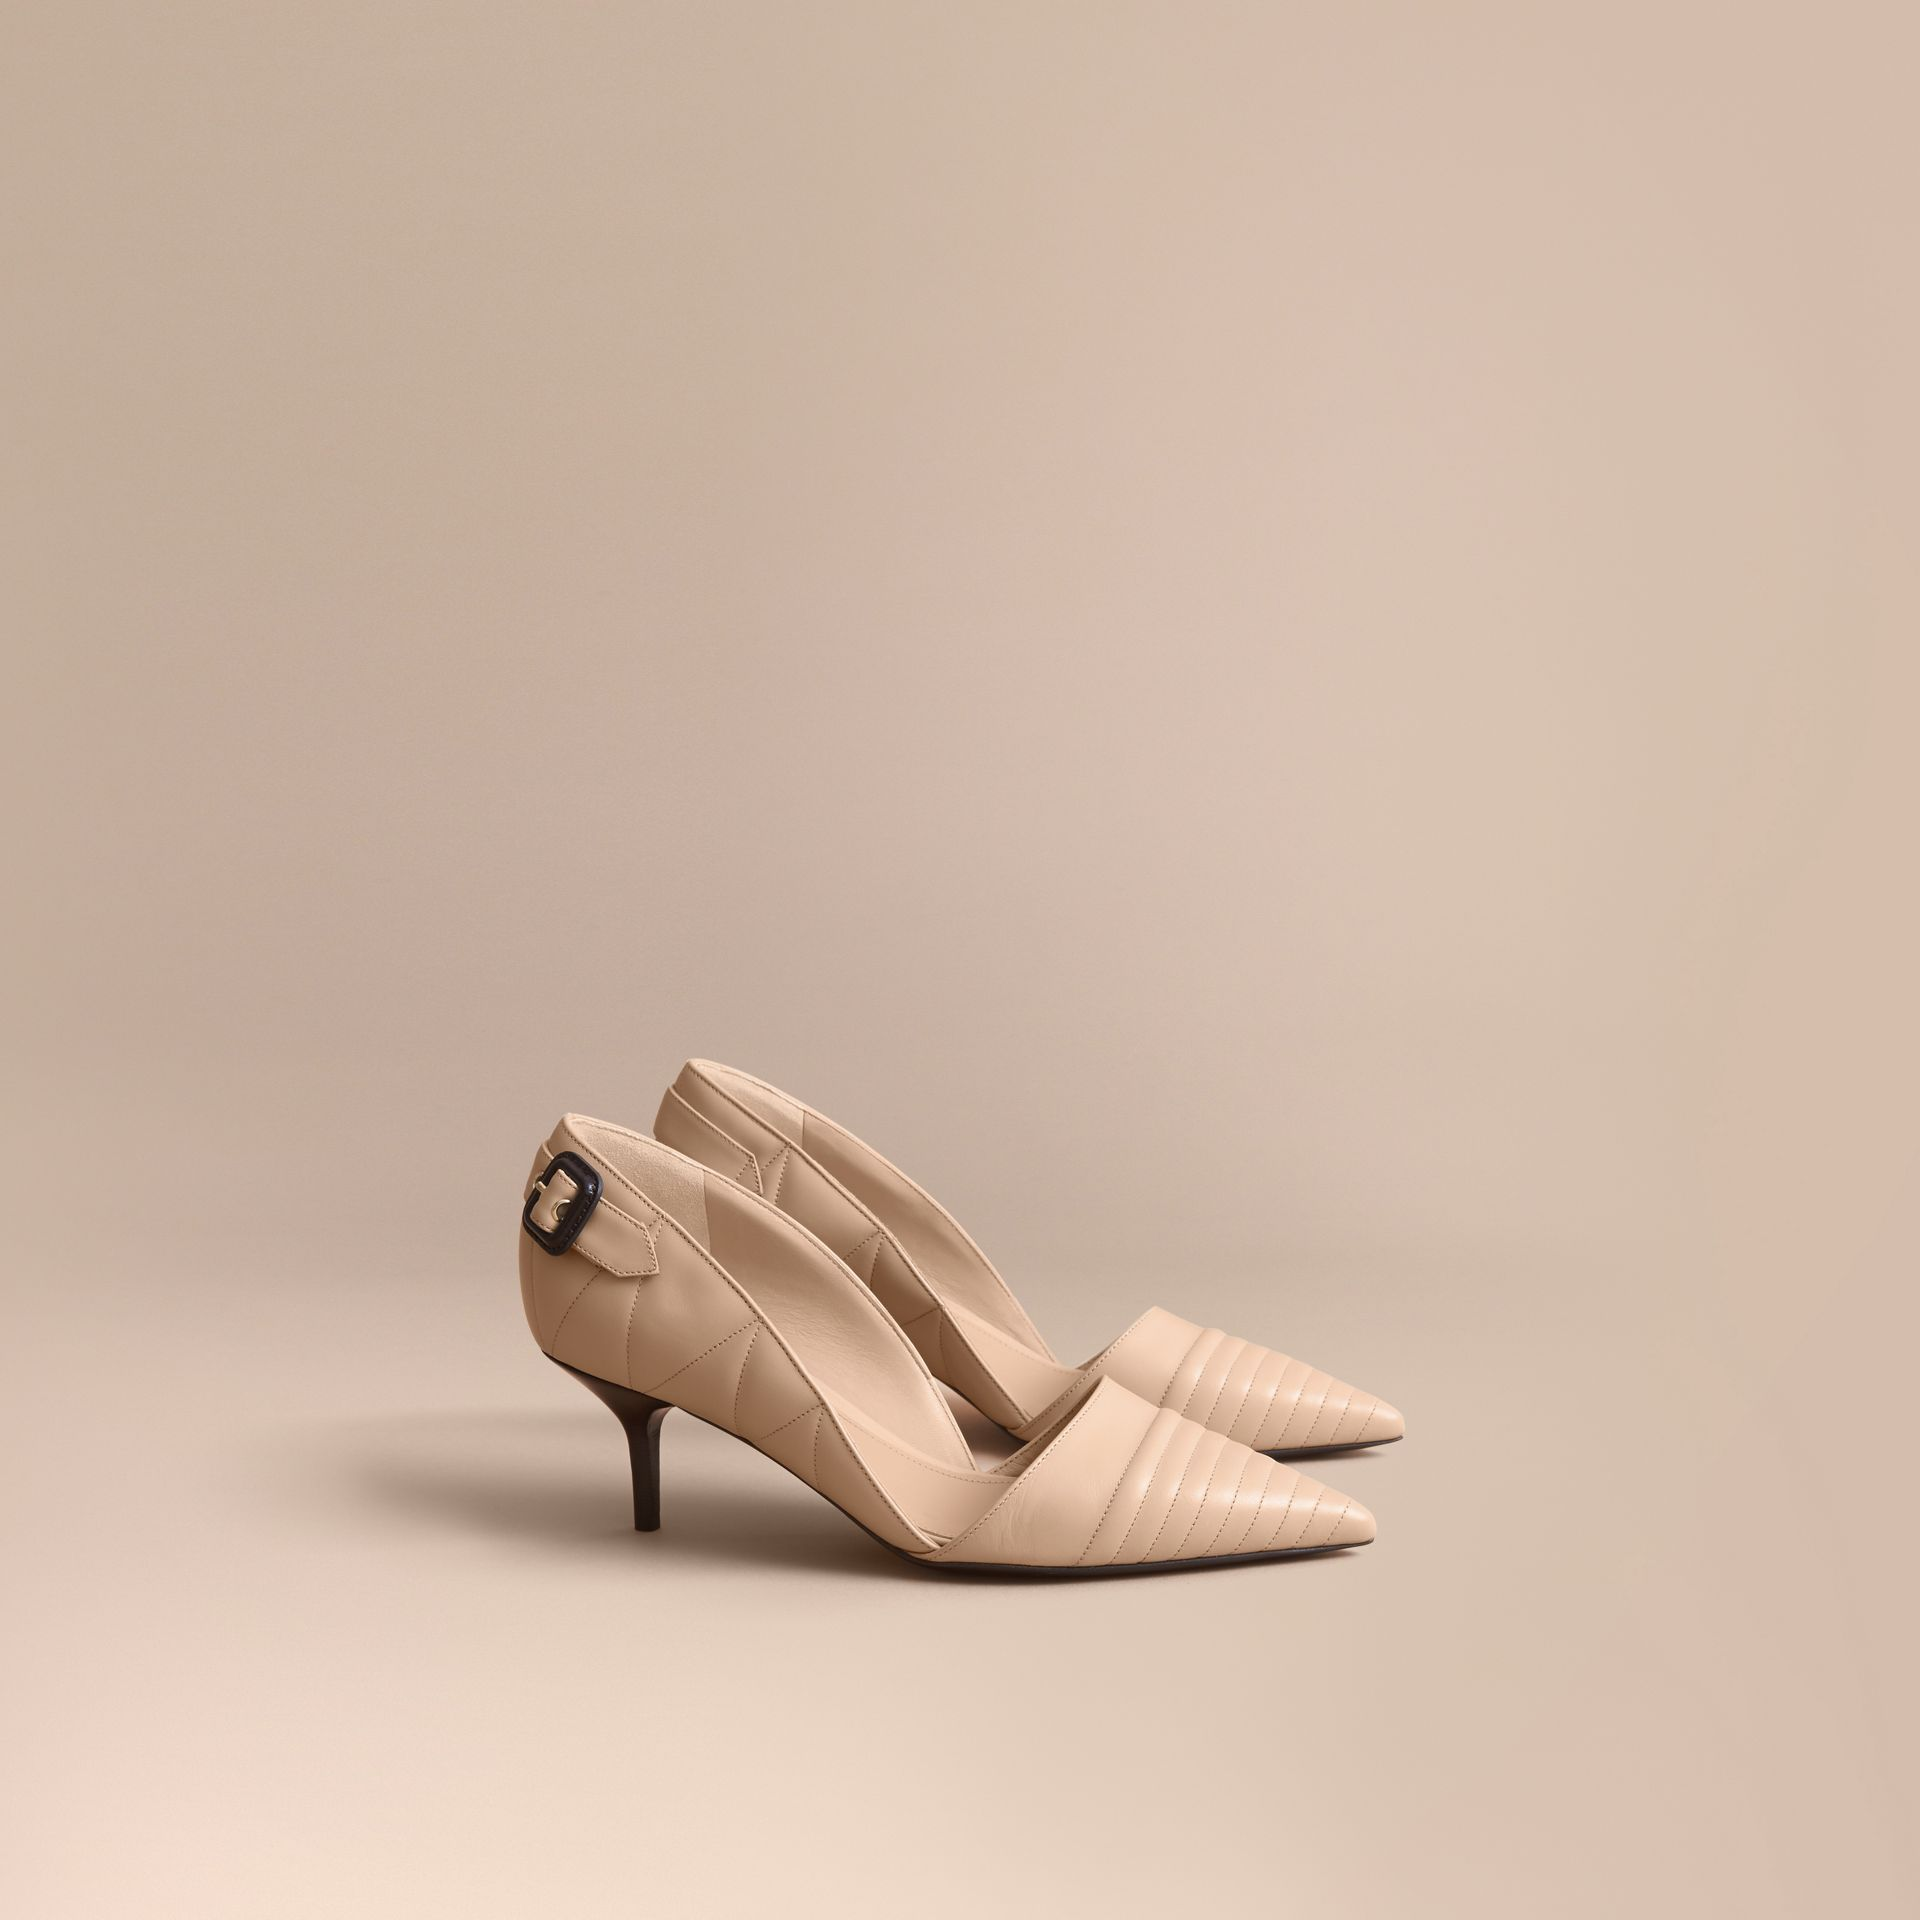 Quilted Leather D'Orsay Pumps in Pale Taupe - Women | Burberry Hong Kong - gallery image 1